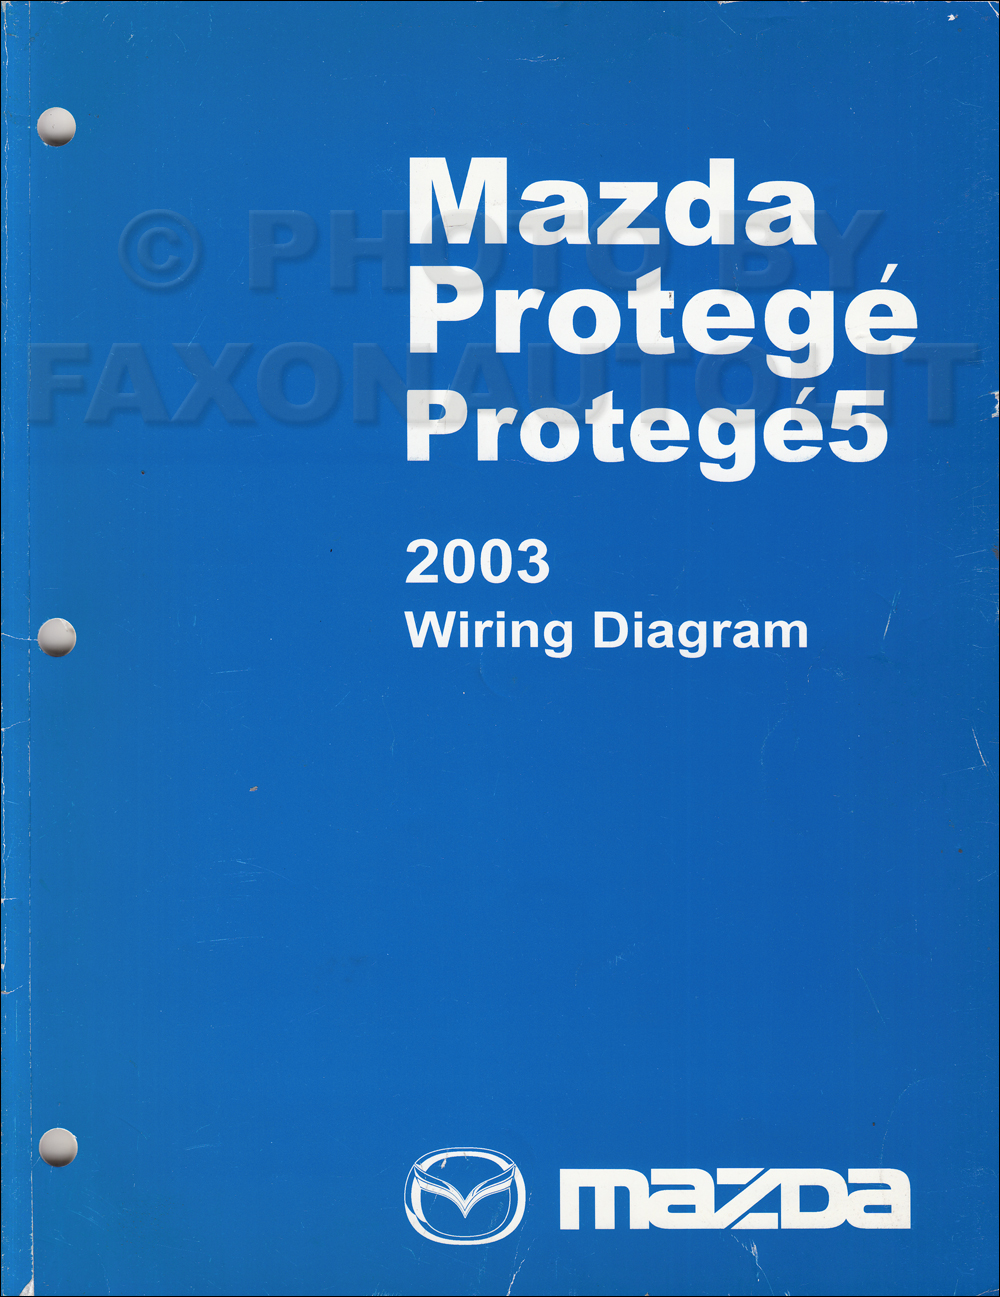 Mazda Protege Wiring Diagram - Wiring Diagram Mega on ford mustang shaker 500 radio wiring diagram, chevy s10 radio wiring diagram, honda del sol radio wiring diagram, geo metro radio wiring diagram, chevy metro radio wiring diagram, chevy trailblazer radio wiring diagram, chevy blazer radio wiring diagram, toyota solara radio wiring diagram, hyundai tiburon radio wiring diagram, bmw 325i radio wiring diagram, chevy cobalt radio wiring diagram, mitsubishi montero sport radio wiring diagram, chevy impala radio wiring diagram, toyota truck radio wiring diagram, toyota mr2 radio wiring diagram, nissan sentra radio wiring diagram, geo prizm radio wiring diagram, honda s2000 radio wiring diagram, ford tempo radio wiring diagram, pontiac grand am radio wiring diagram,